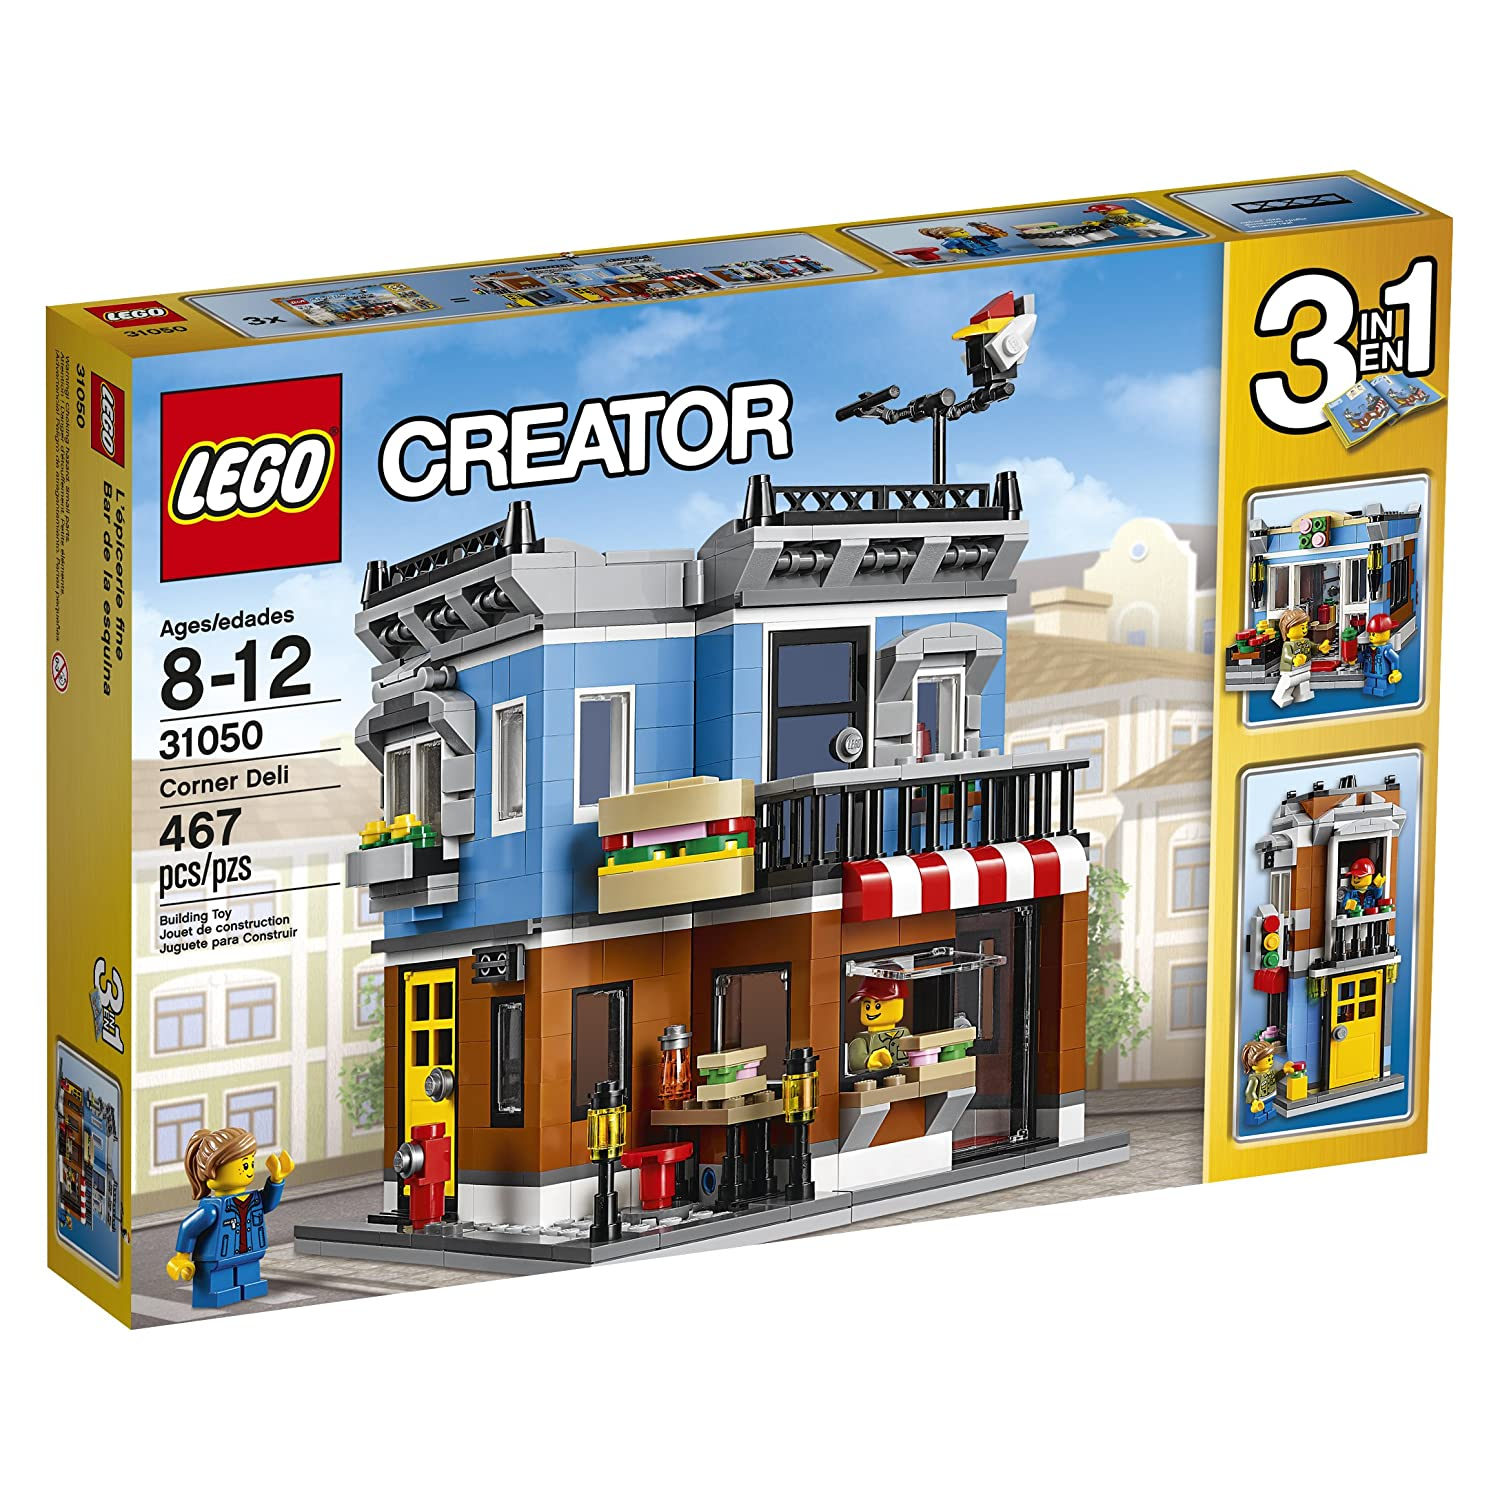 lego creator expert 10244 fairground mixer and more discounted on amazon news the brothers. Black Bedroom Furniture Sets. Home Design Ideas